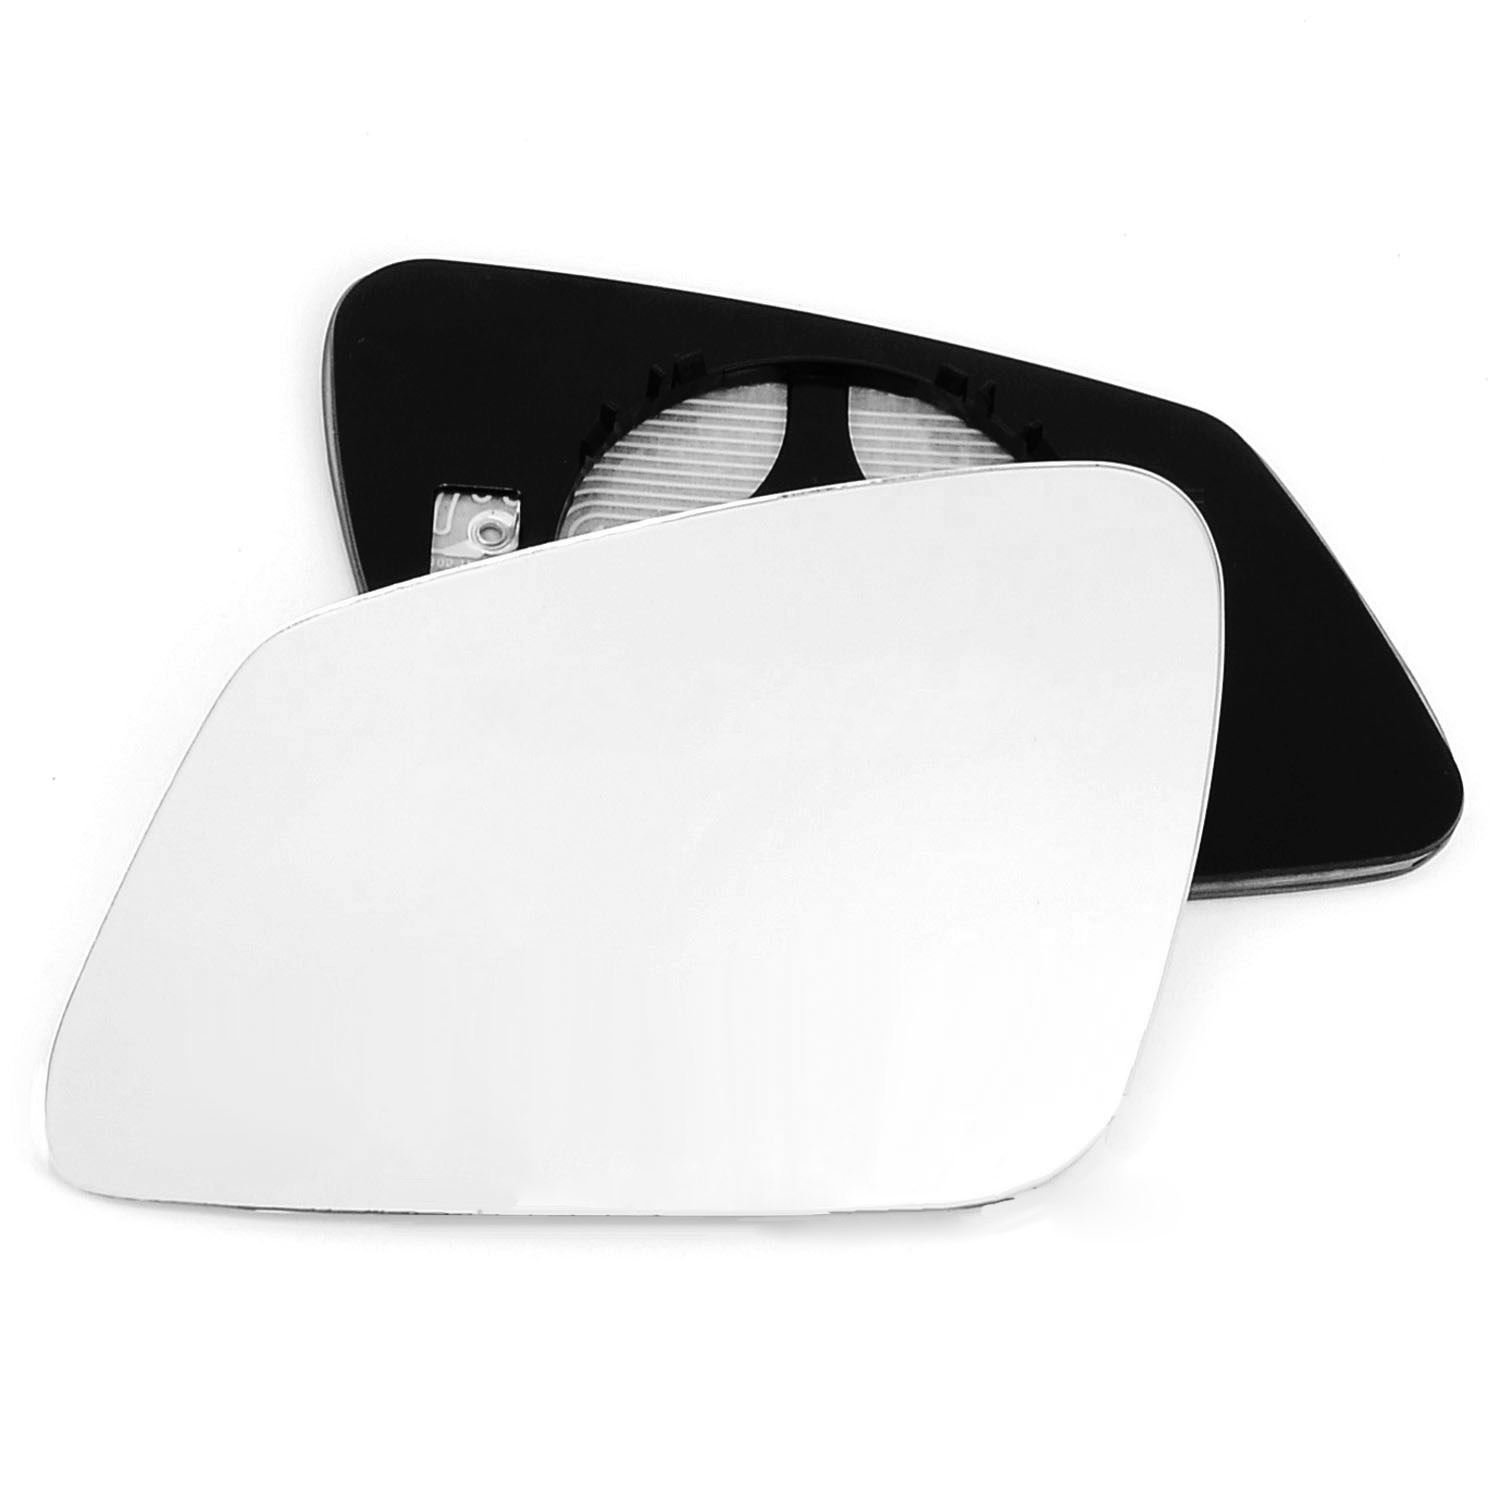 Clip On Passenger left hand side Heated wing door Silver mirror glass with backing plate #C-SHY//L-BWF2000